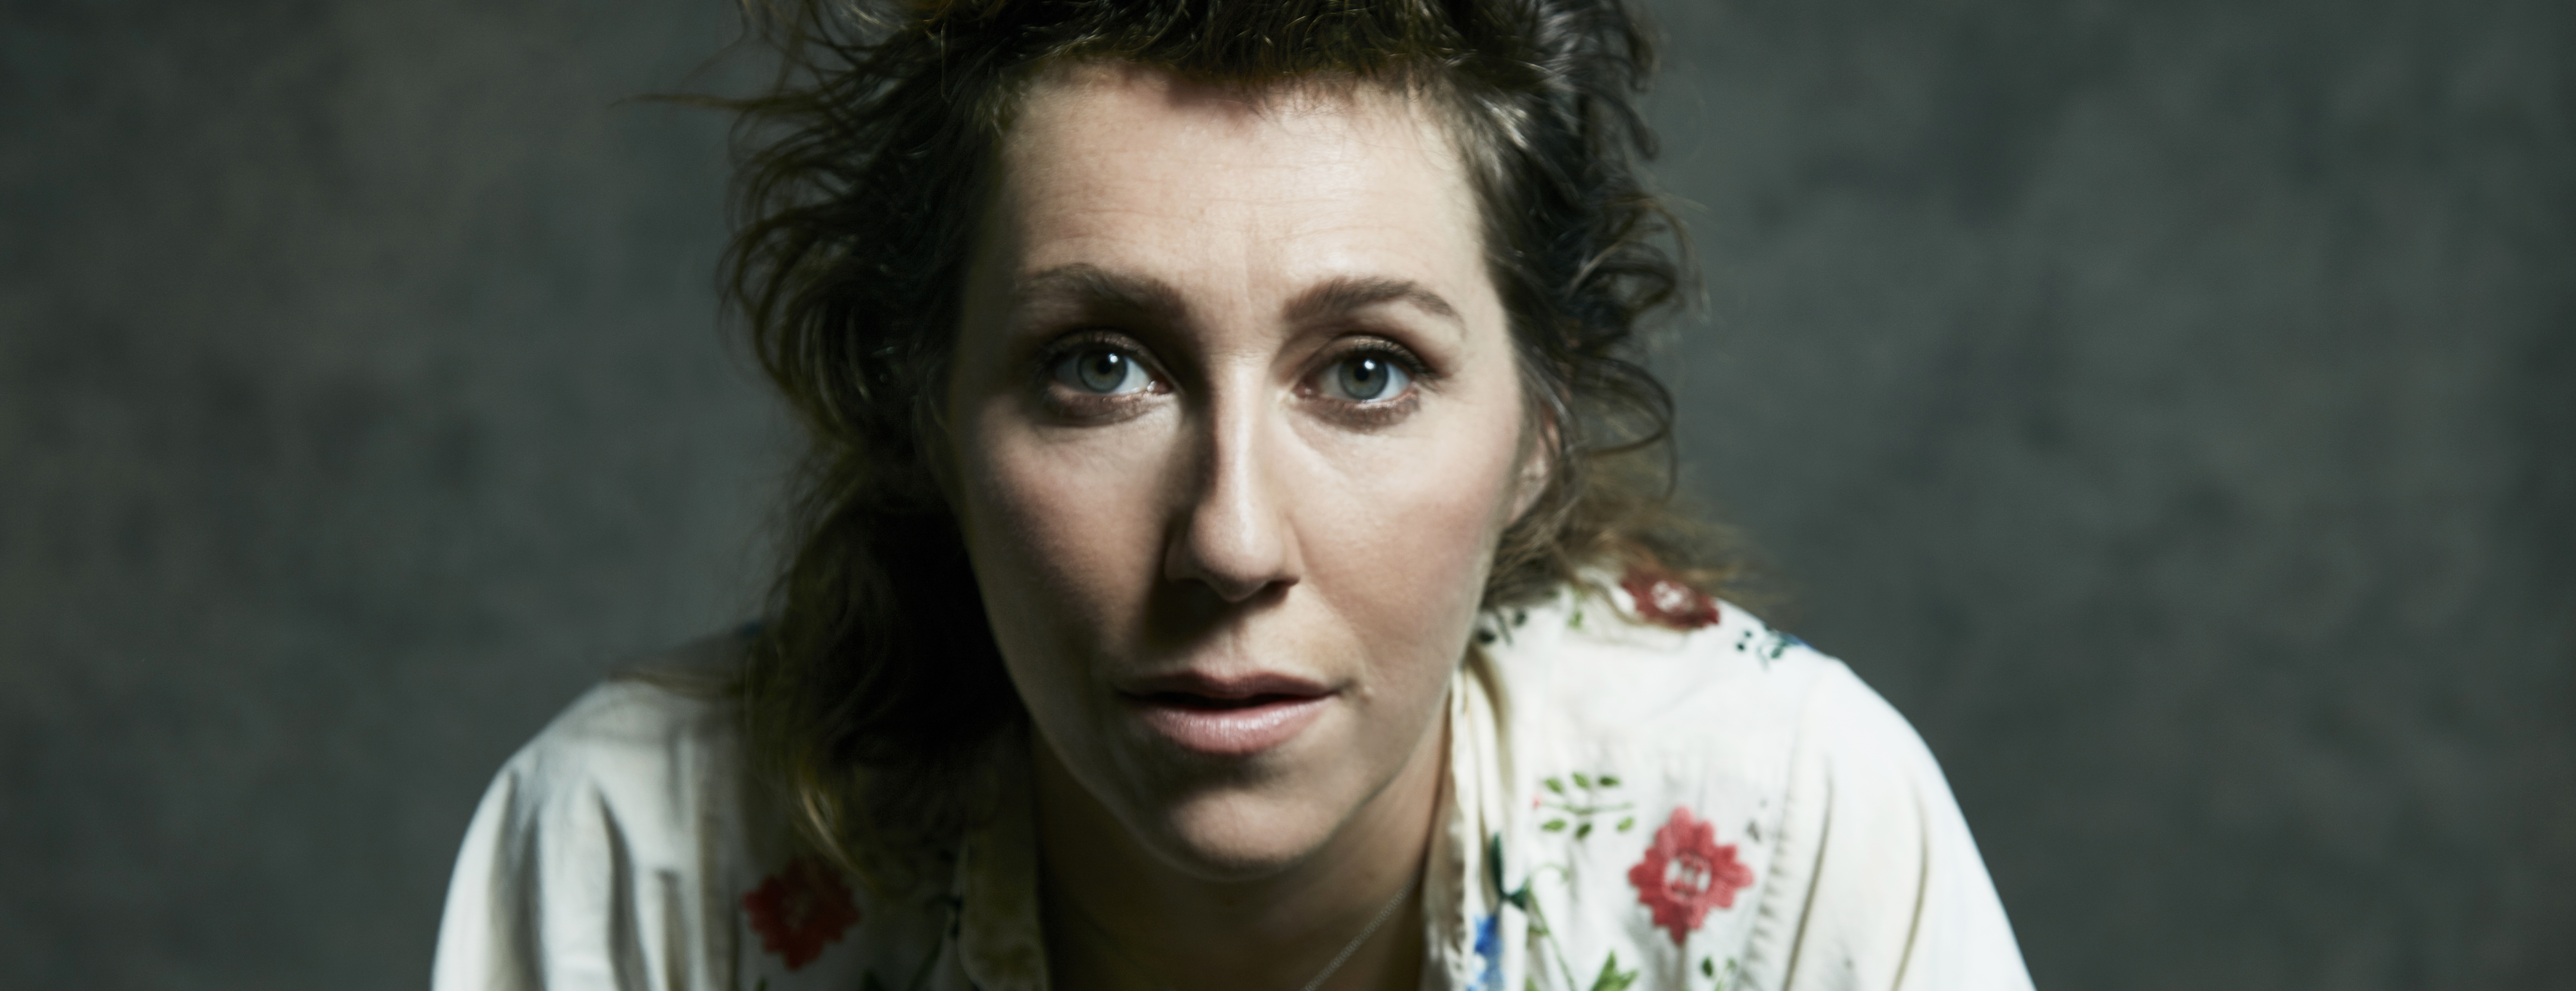 Martha Wainwright - En-tête